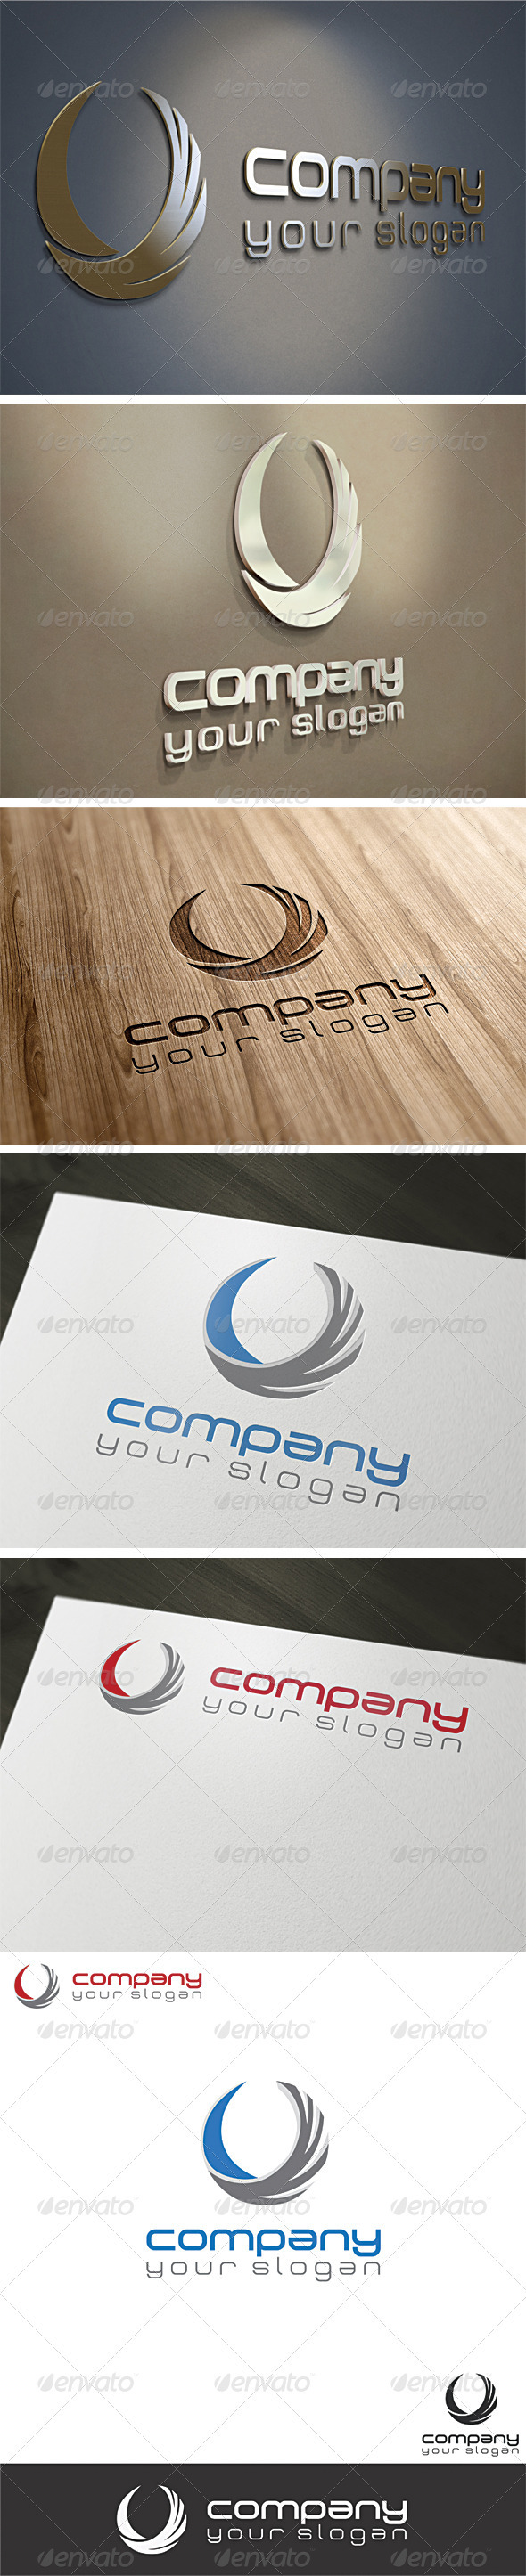 Agency Logo Template - Vector Abstract